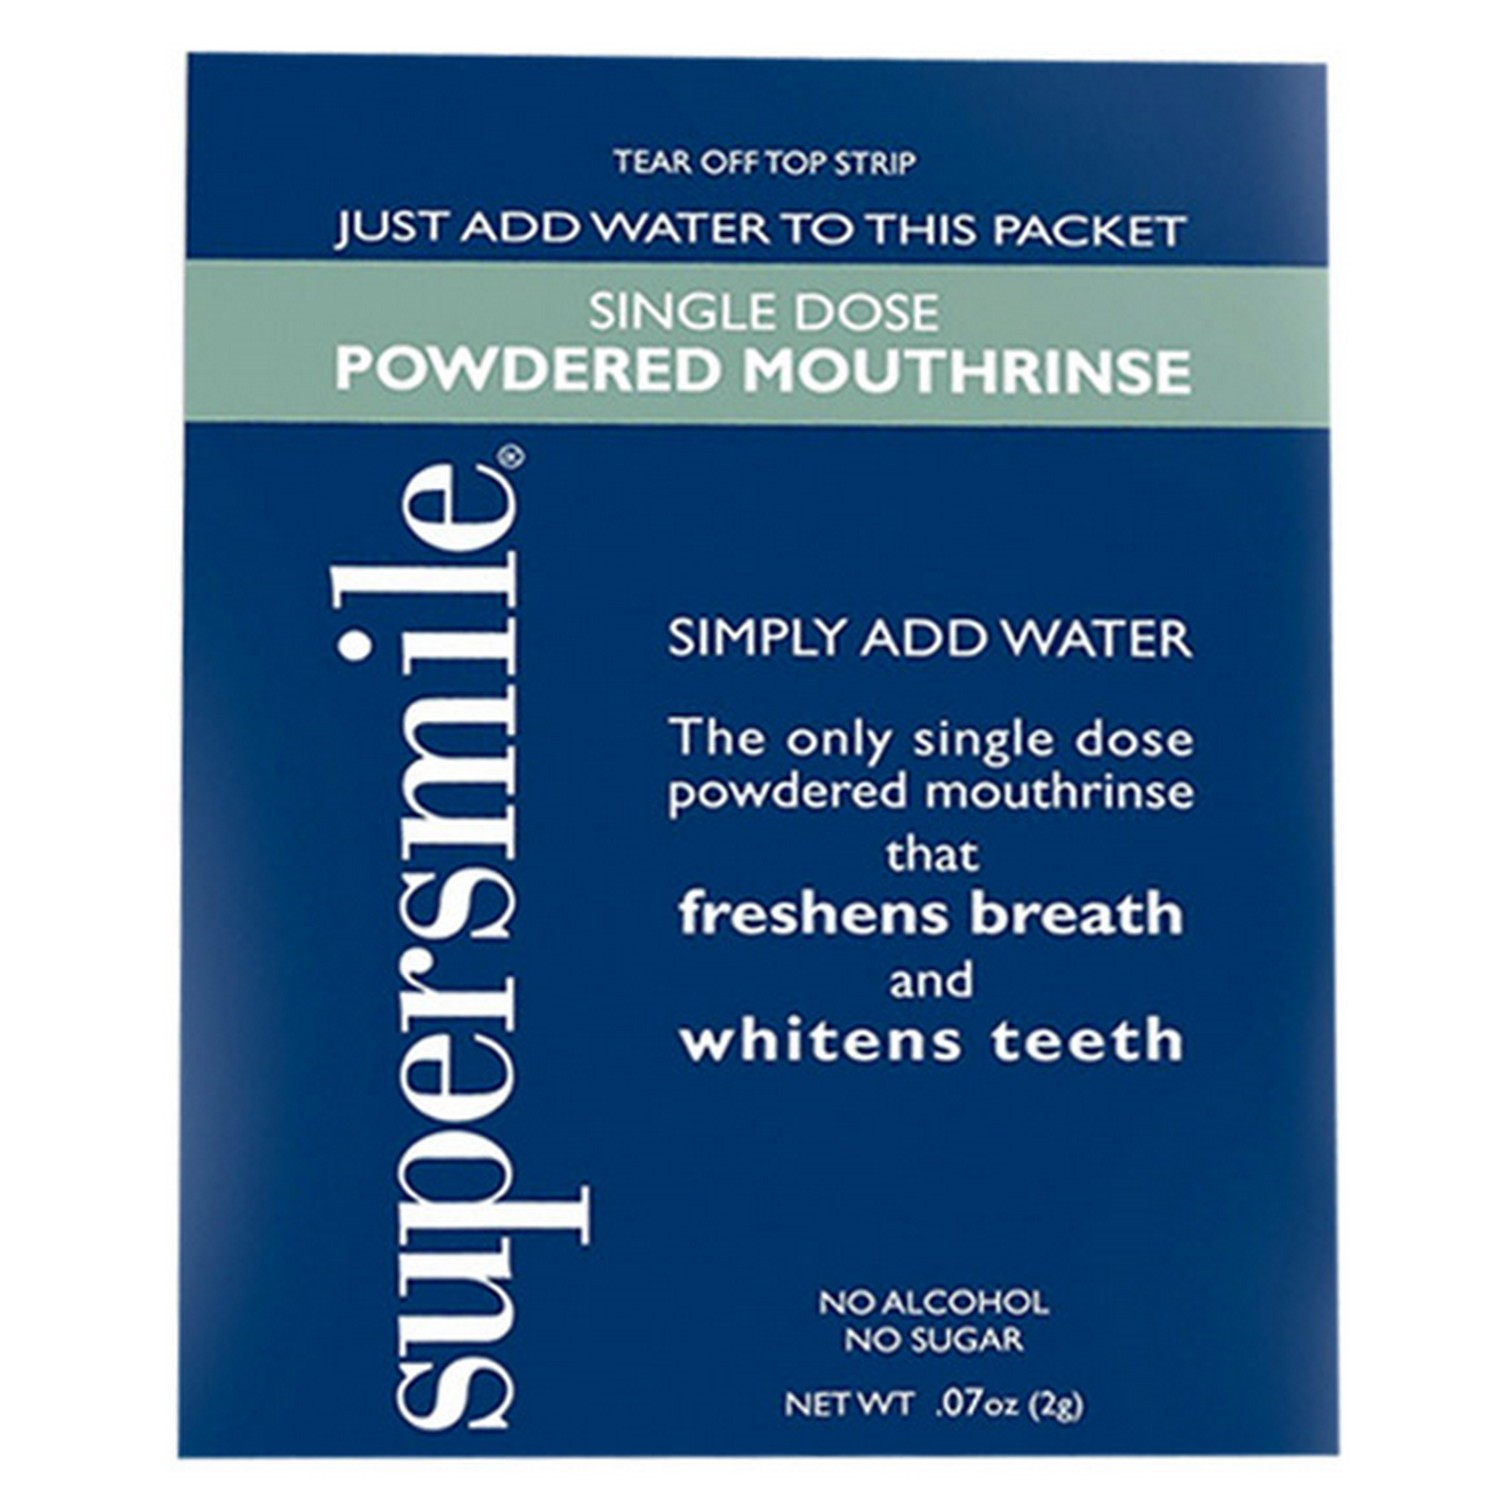 Supersmile SINGLE DOSE POWDERED MOUTHRINSE - 60 Pack (60 Packettes)